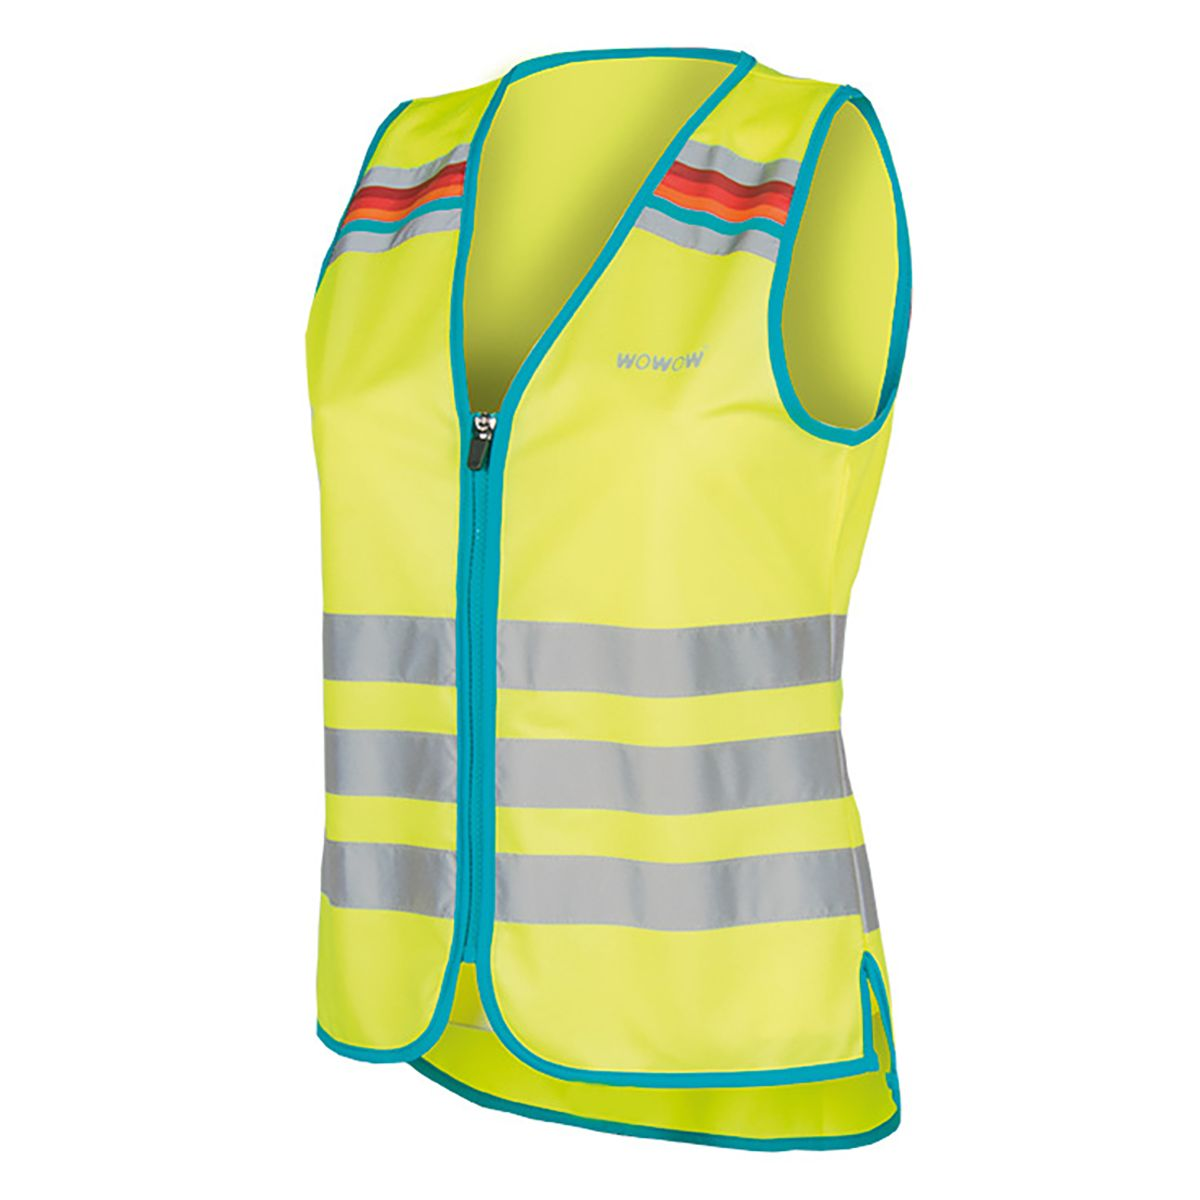 WOWOW LUCY JACKET YELLOW women's reflective vest | Veste